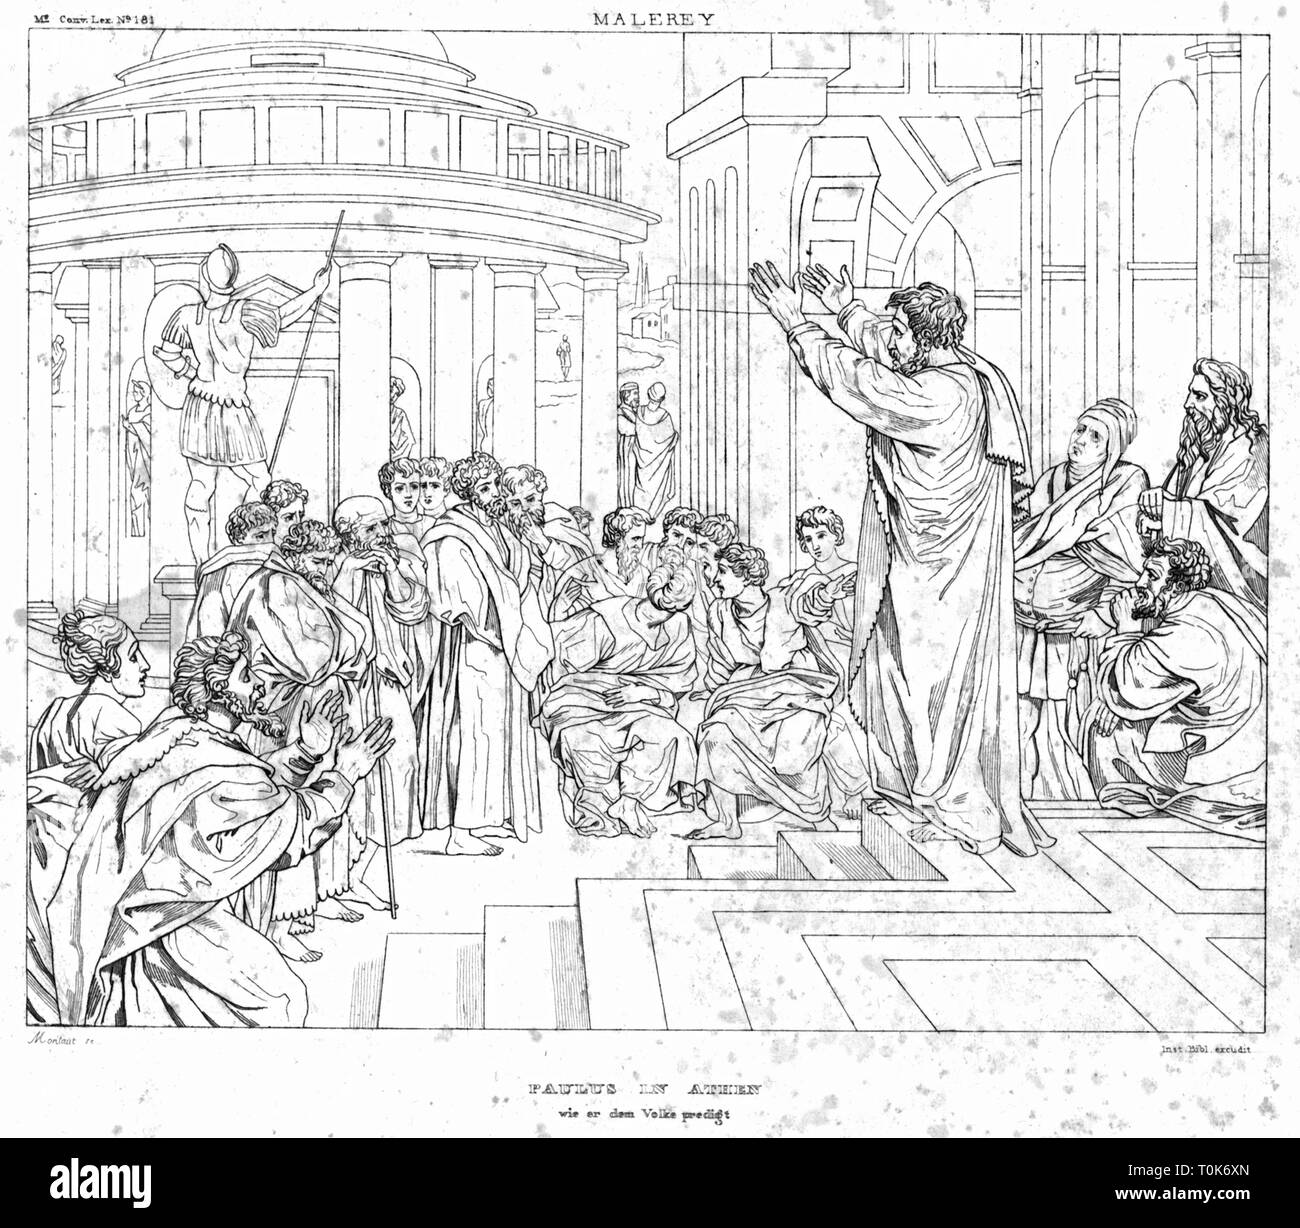 religion, biblical scenes, 'St. Paul Preaching in Athens', steel engraving, 19th century, after a painting by Raffaello Sanzio (Raphael), 1515, Additional-Rights-Clearance-Info-Not-Available - Stock Image